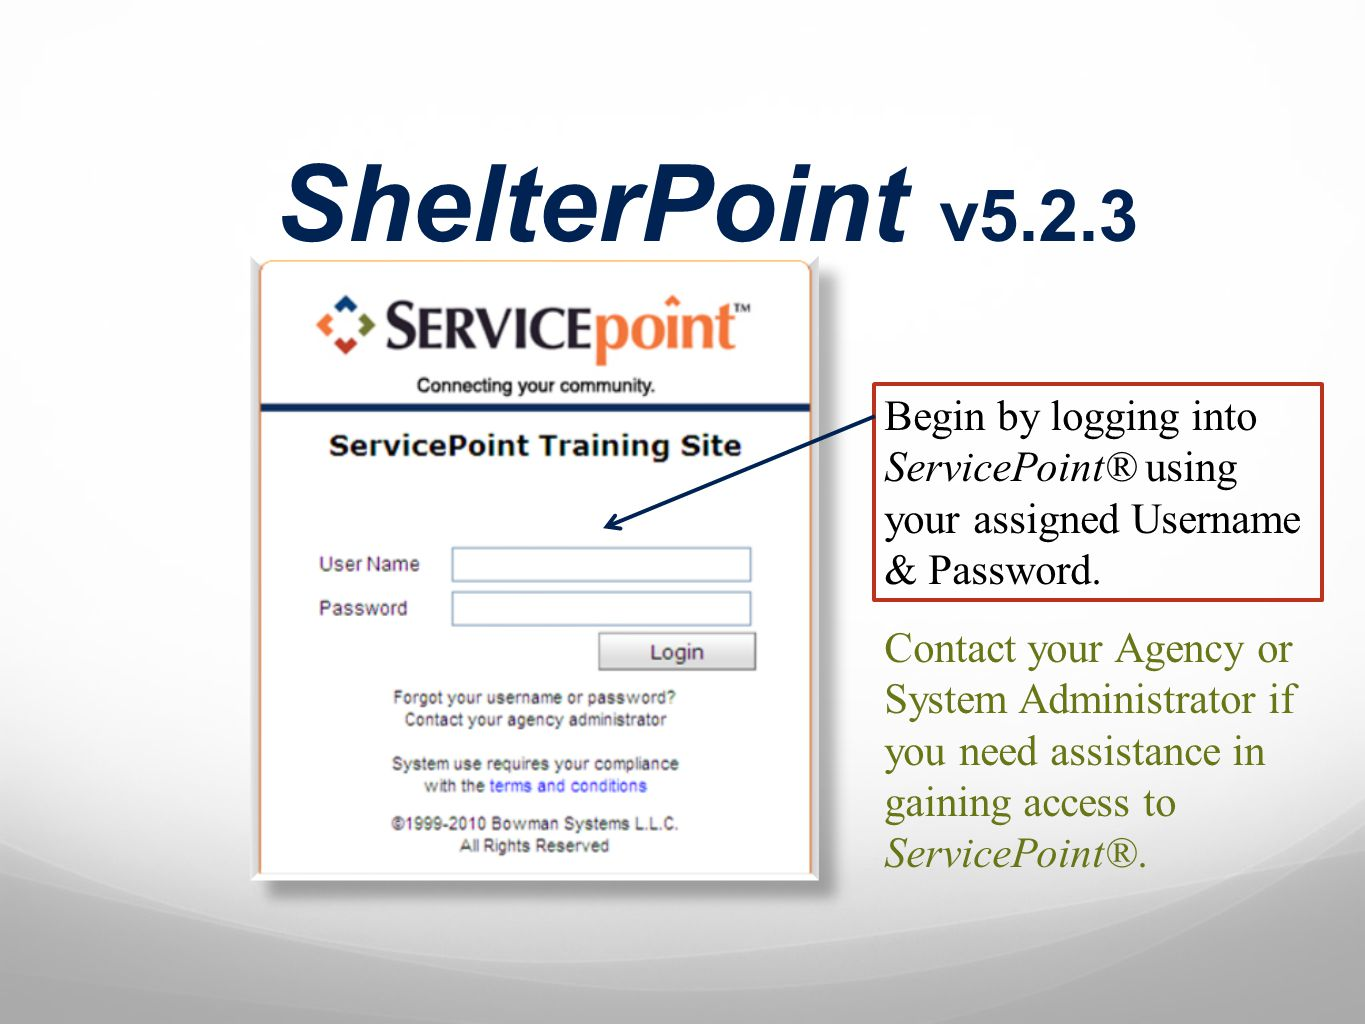 Referrals Emergency Shelter and Transitional Housing Workflow: Check in Referrals